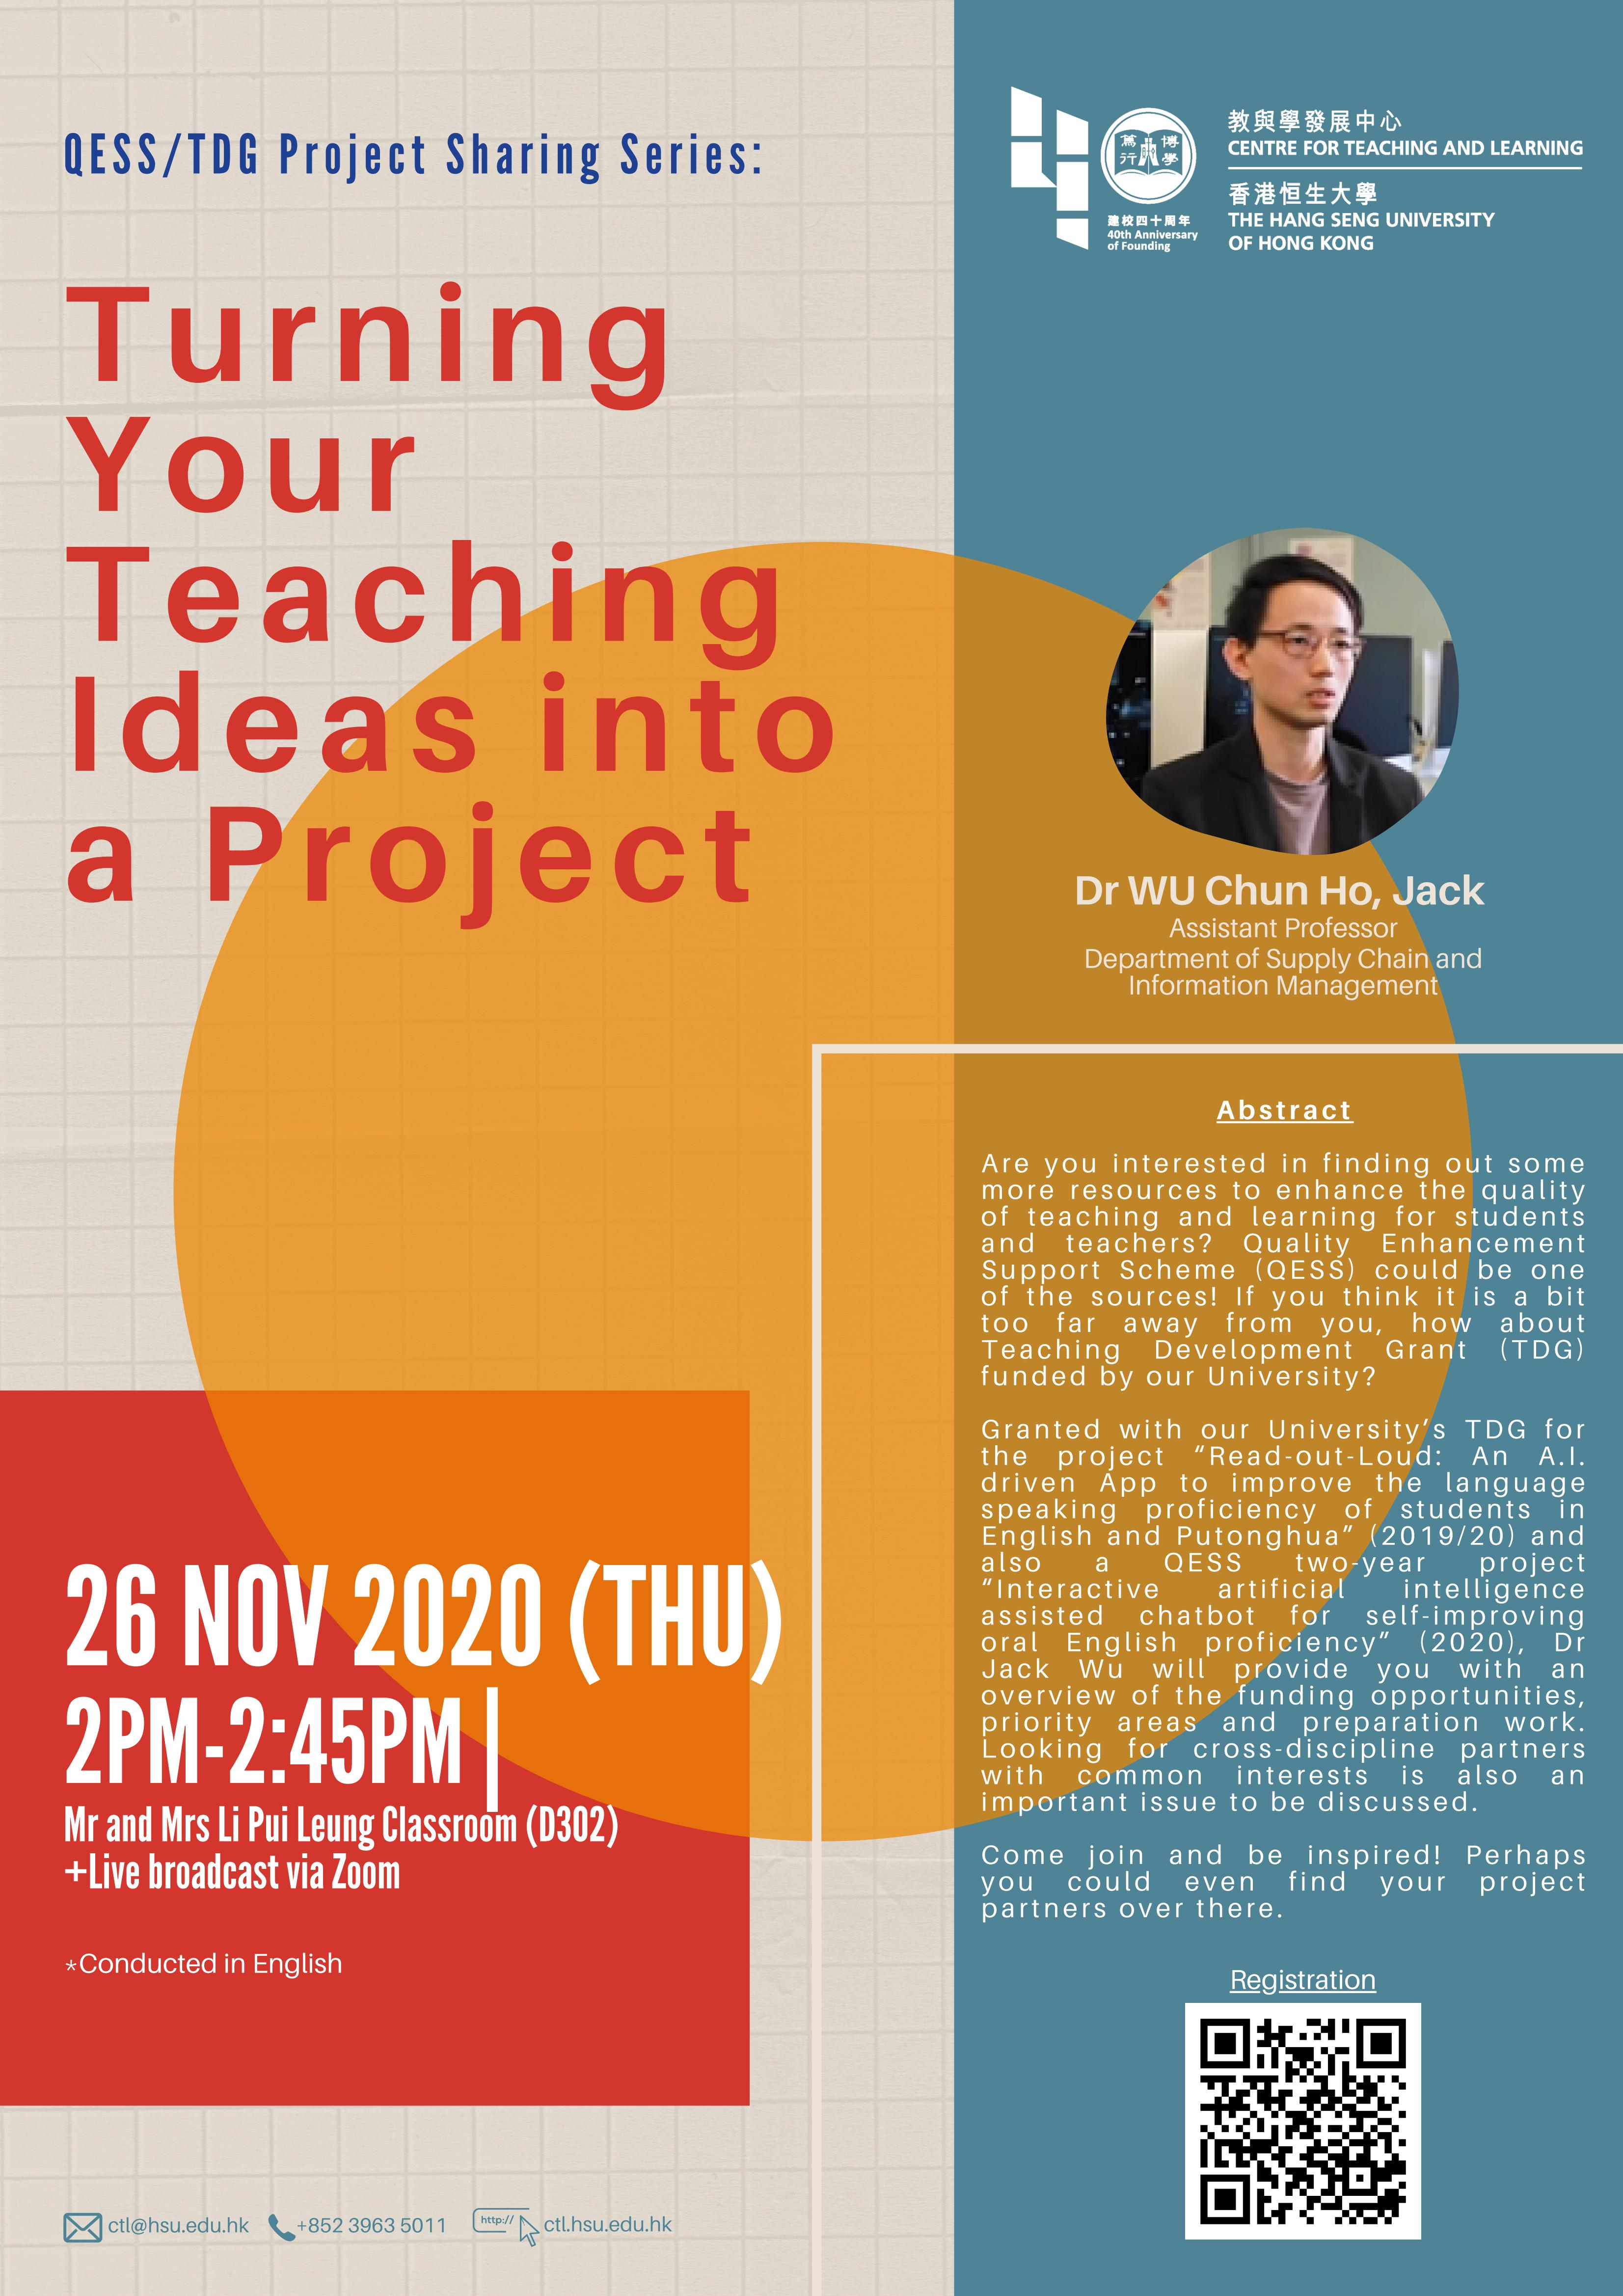 QESS/TDG Project Sharing Series #1: Turning Your Teaching Ideas into a Project